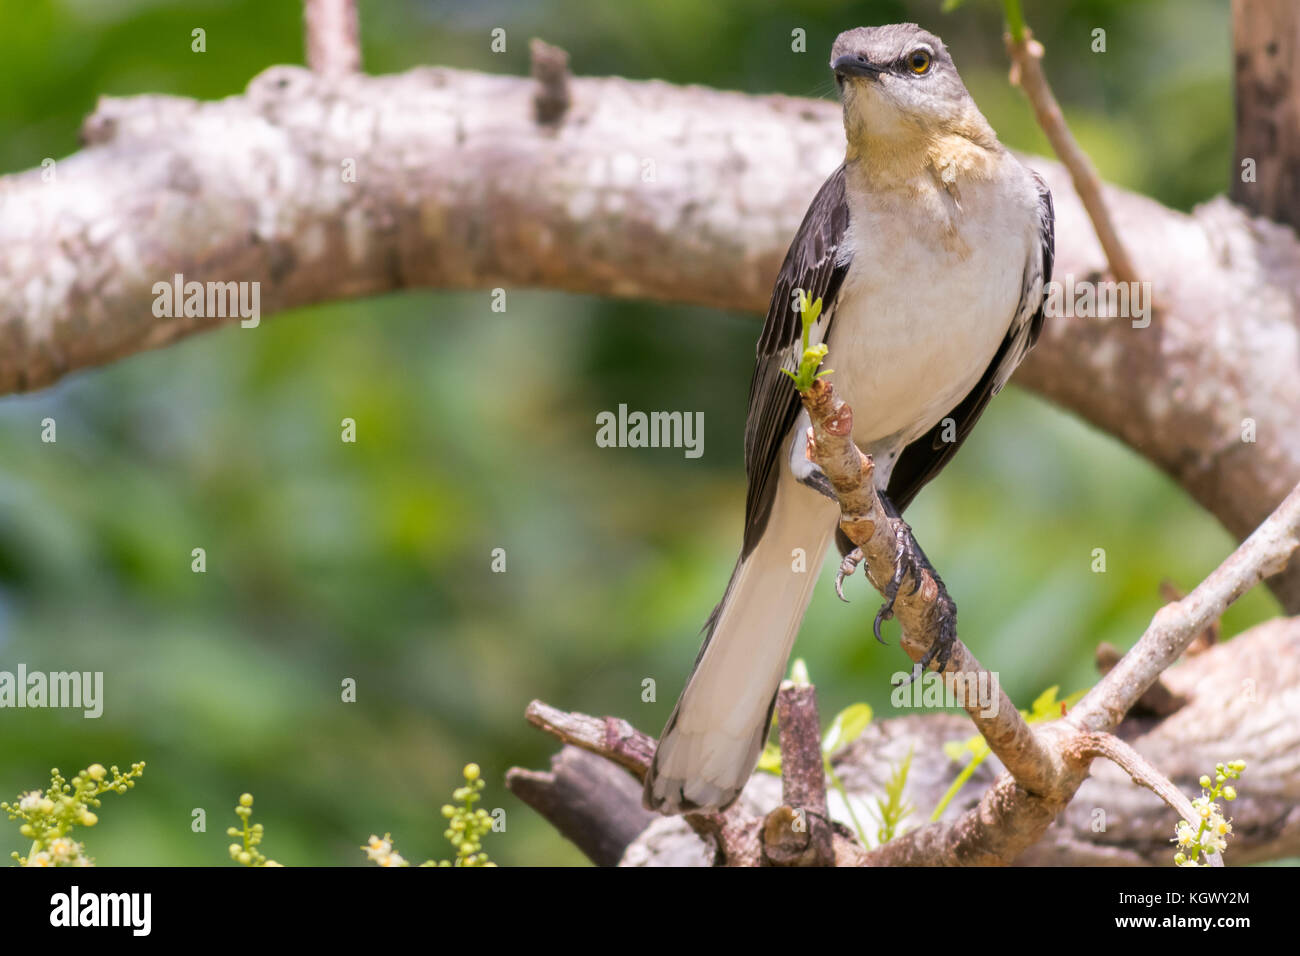 Northern Mockingbird Mimus Polyglottos Perched On A Tree Branch The Tropical Island Of